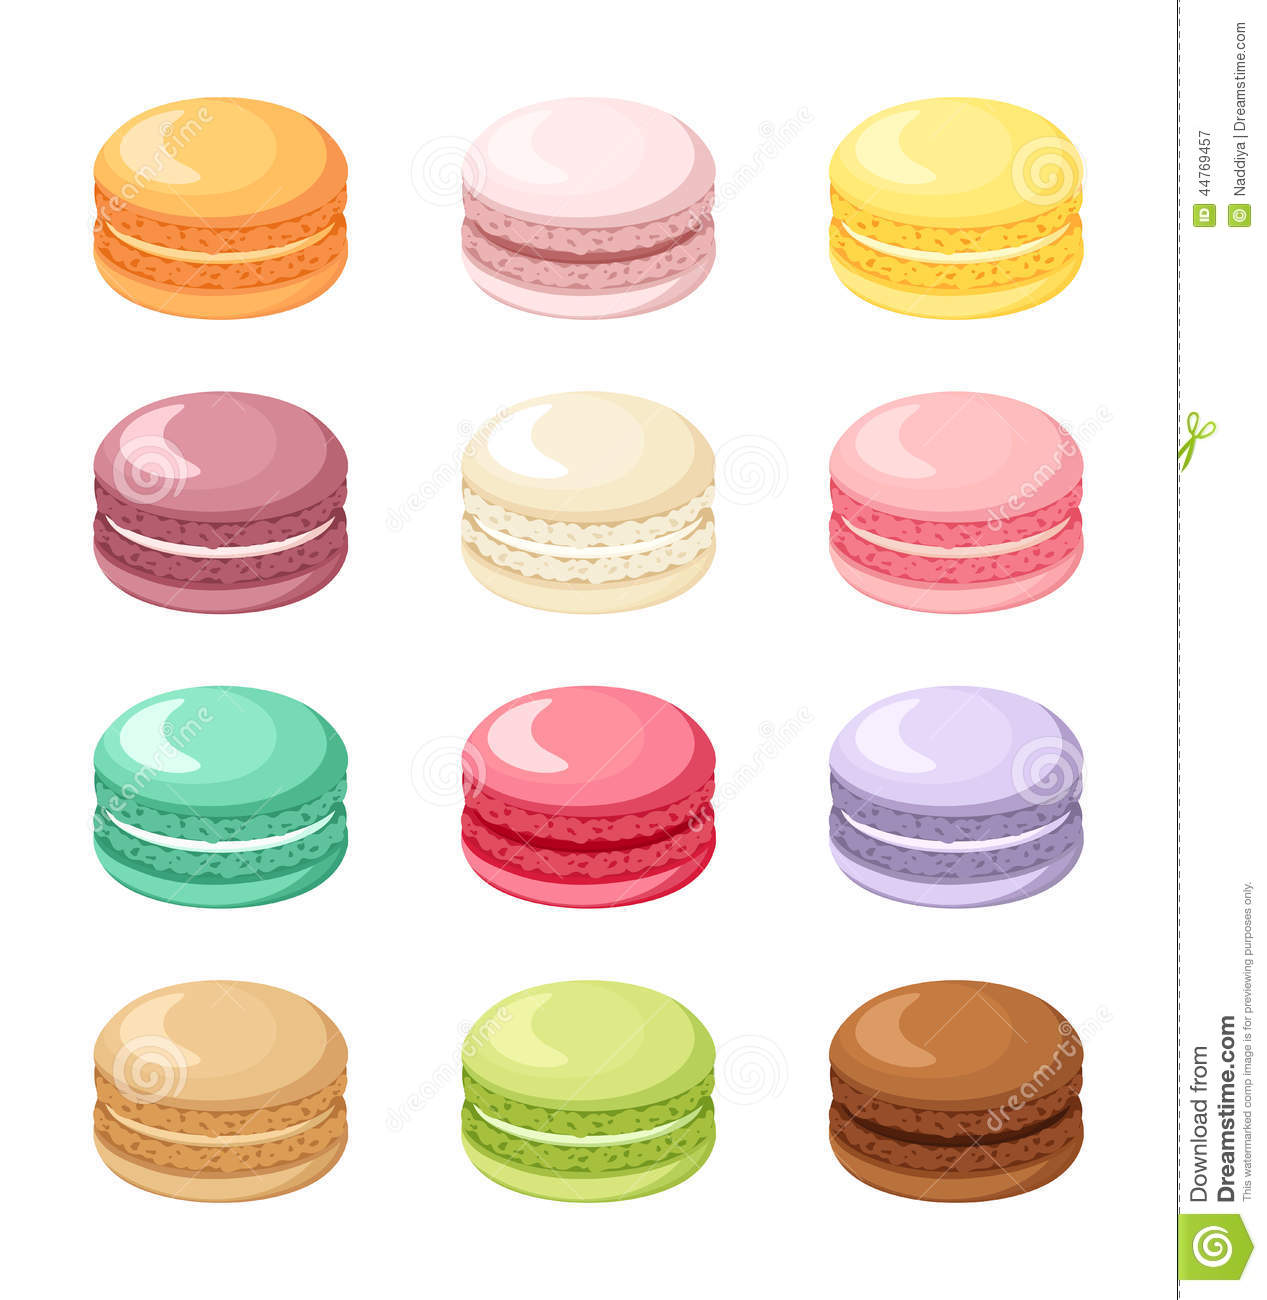 how to draw on macaron design